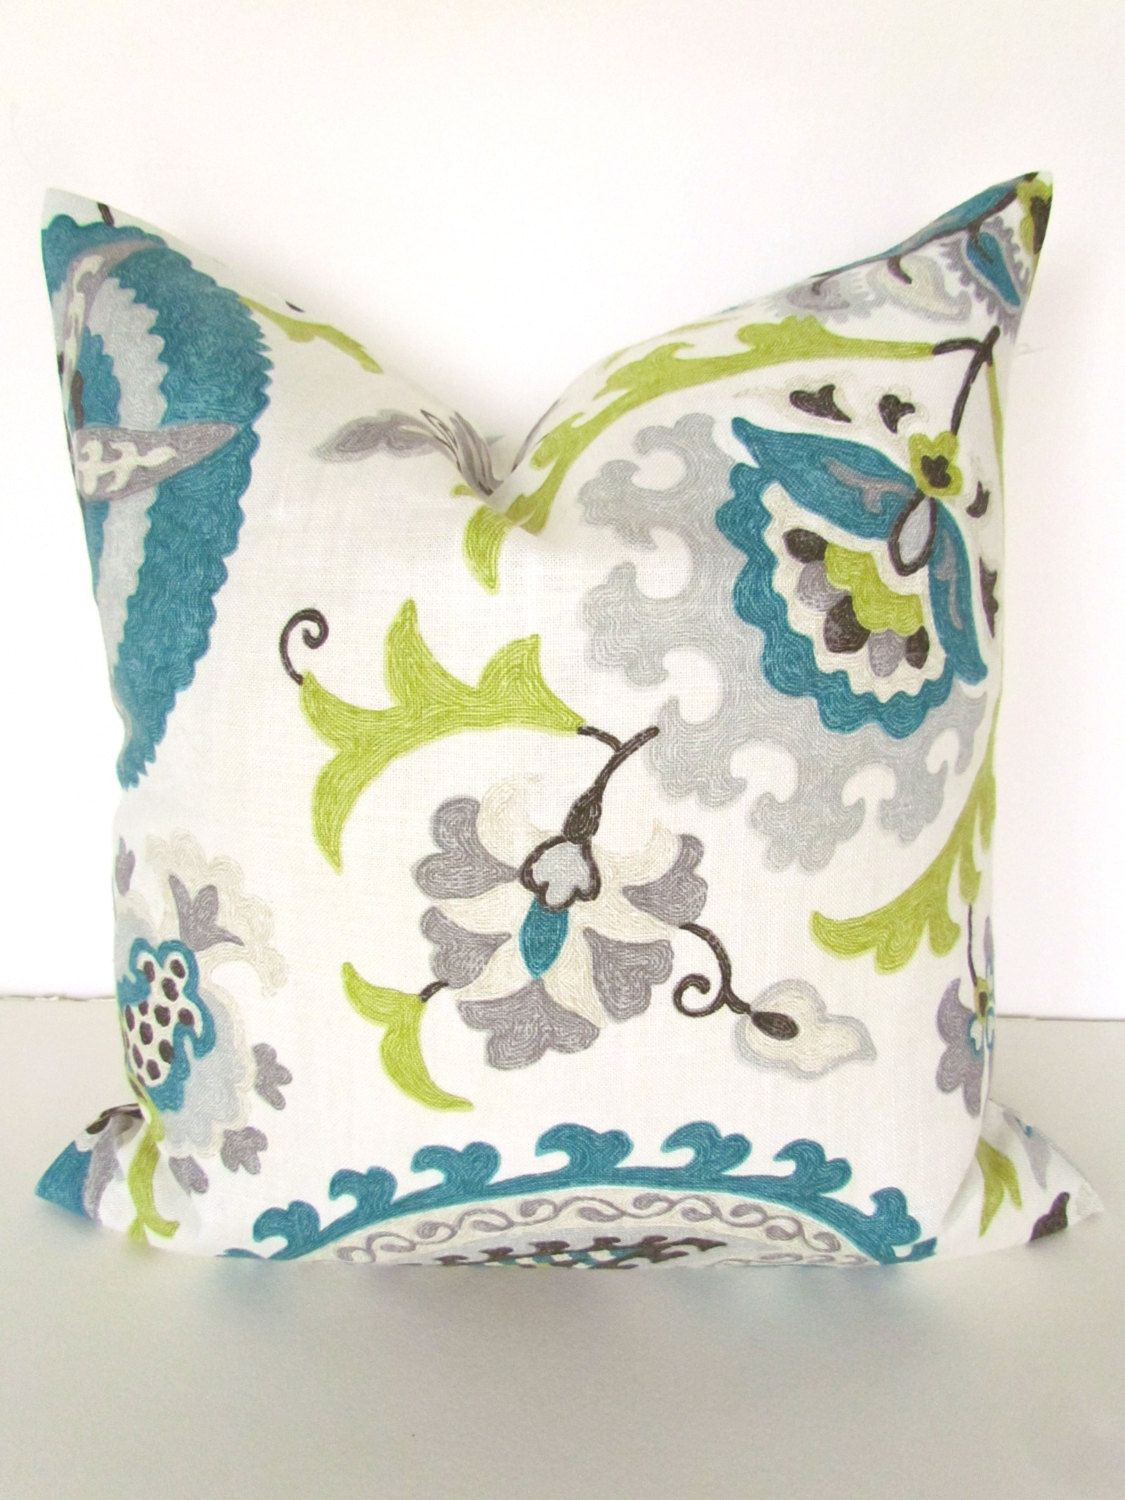 Decorative Accent Pillows Living Room Tall Storage Units For Teal Blue Pillow 16x16 Throw Gray Lime Green Covers Turquoise Grey Floral Decor Linen Home And By Sayitwithpillows On